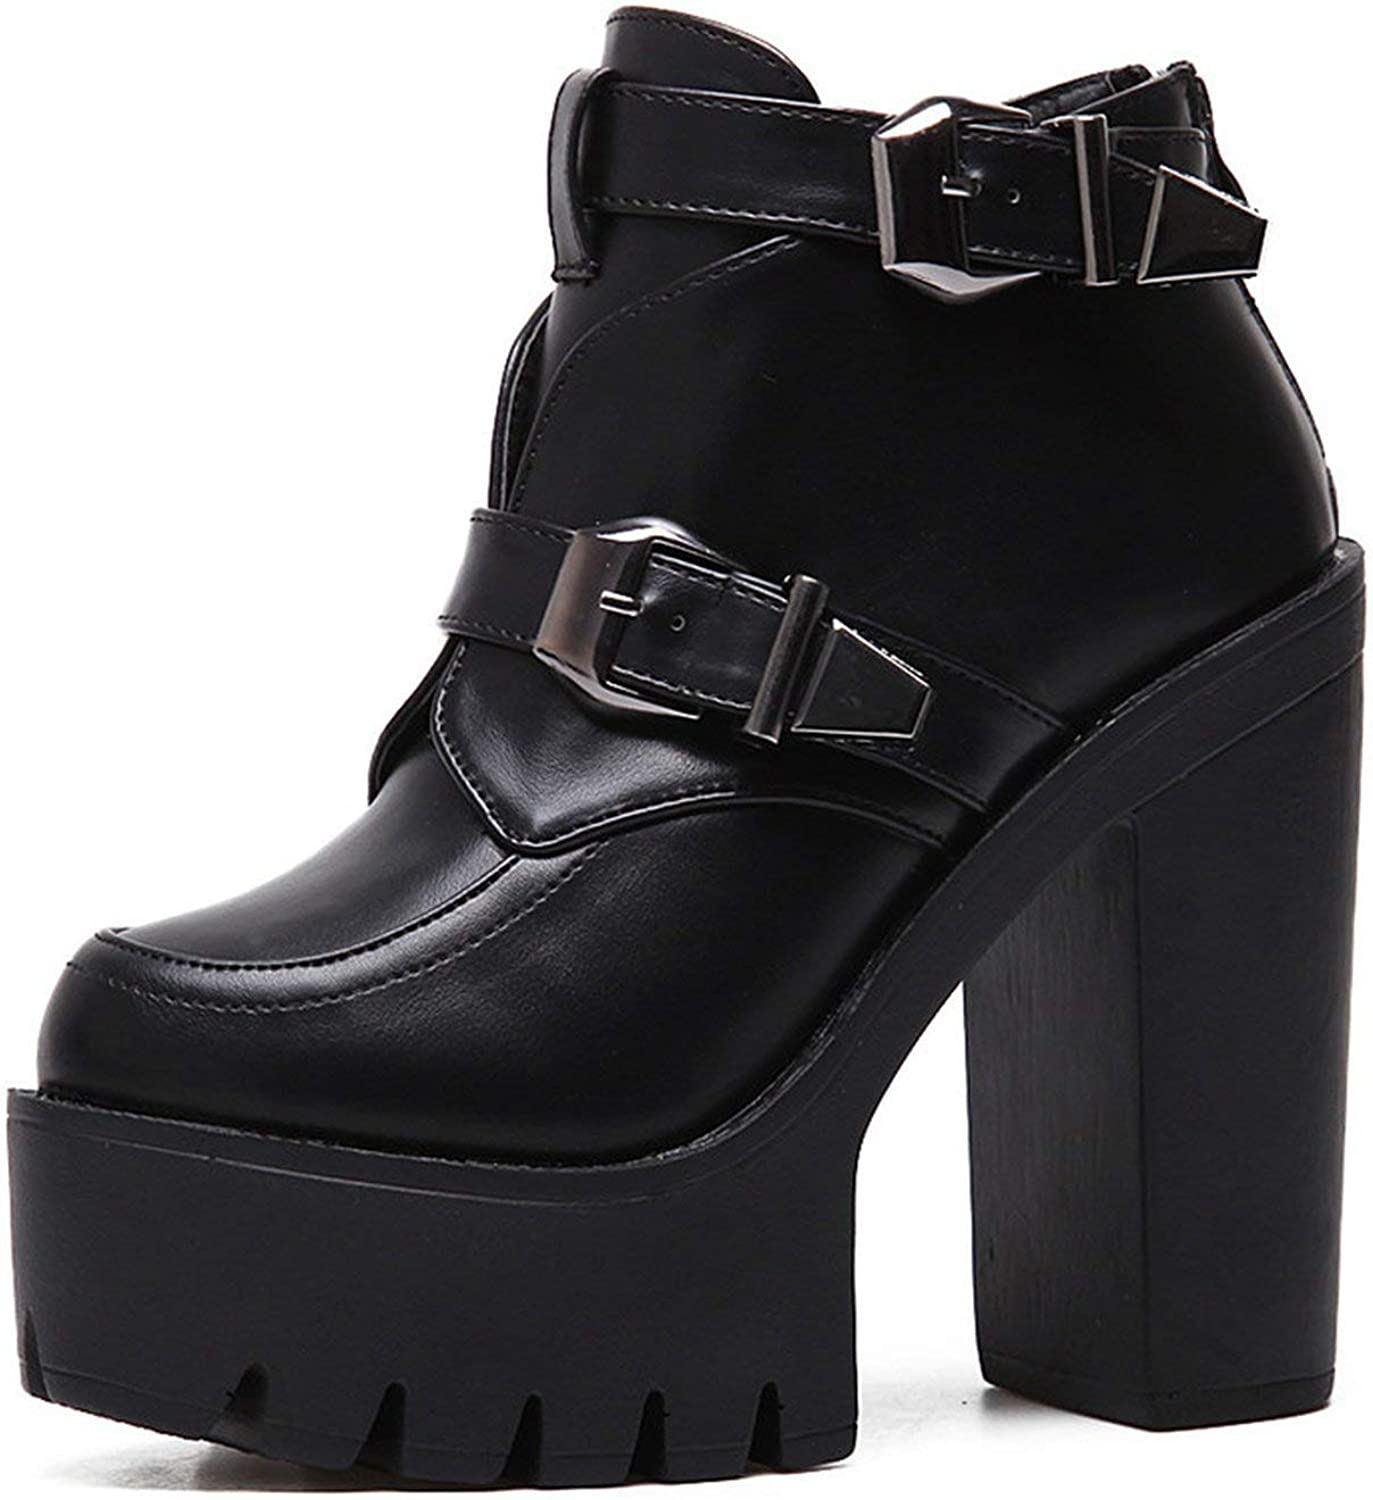 Spring Autumn Women Boots Round Toe Platform Ankle Boots Buckle Black Leather shoes